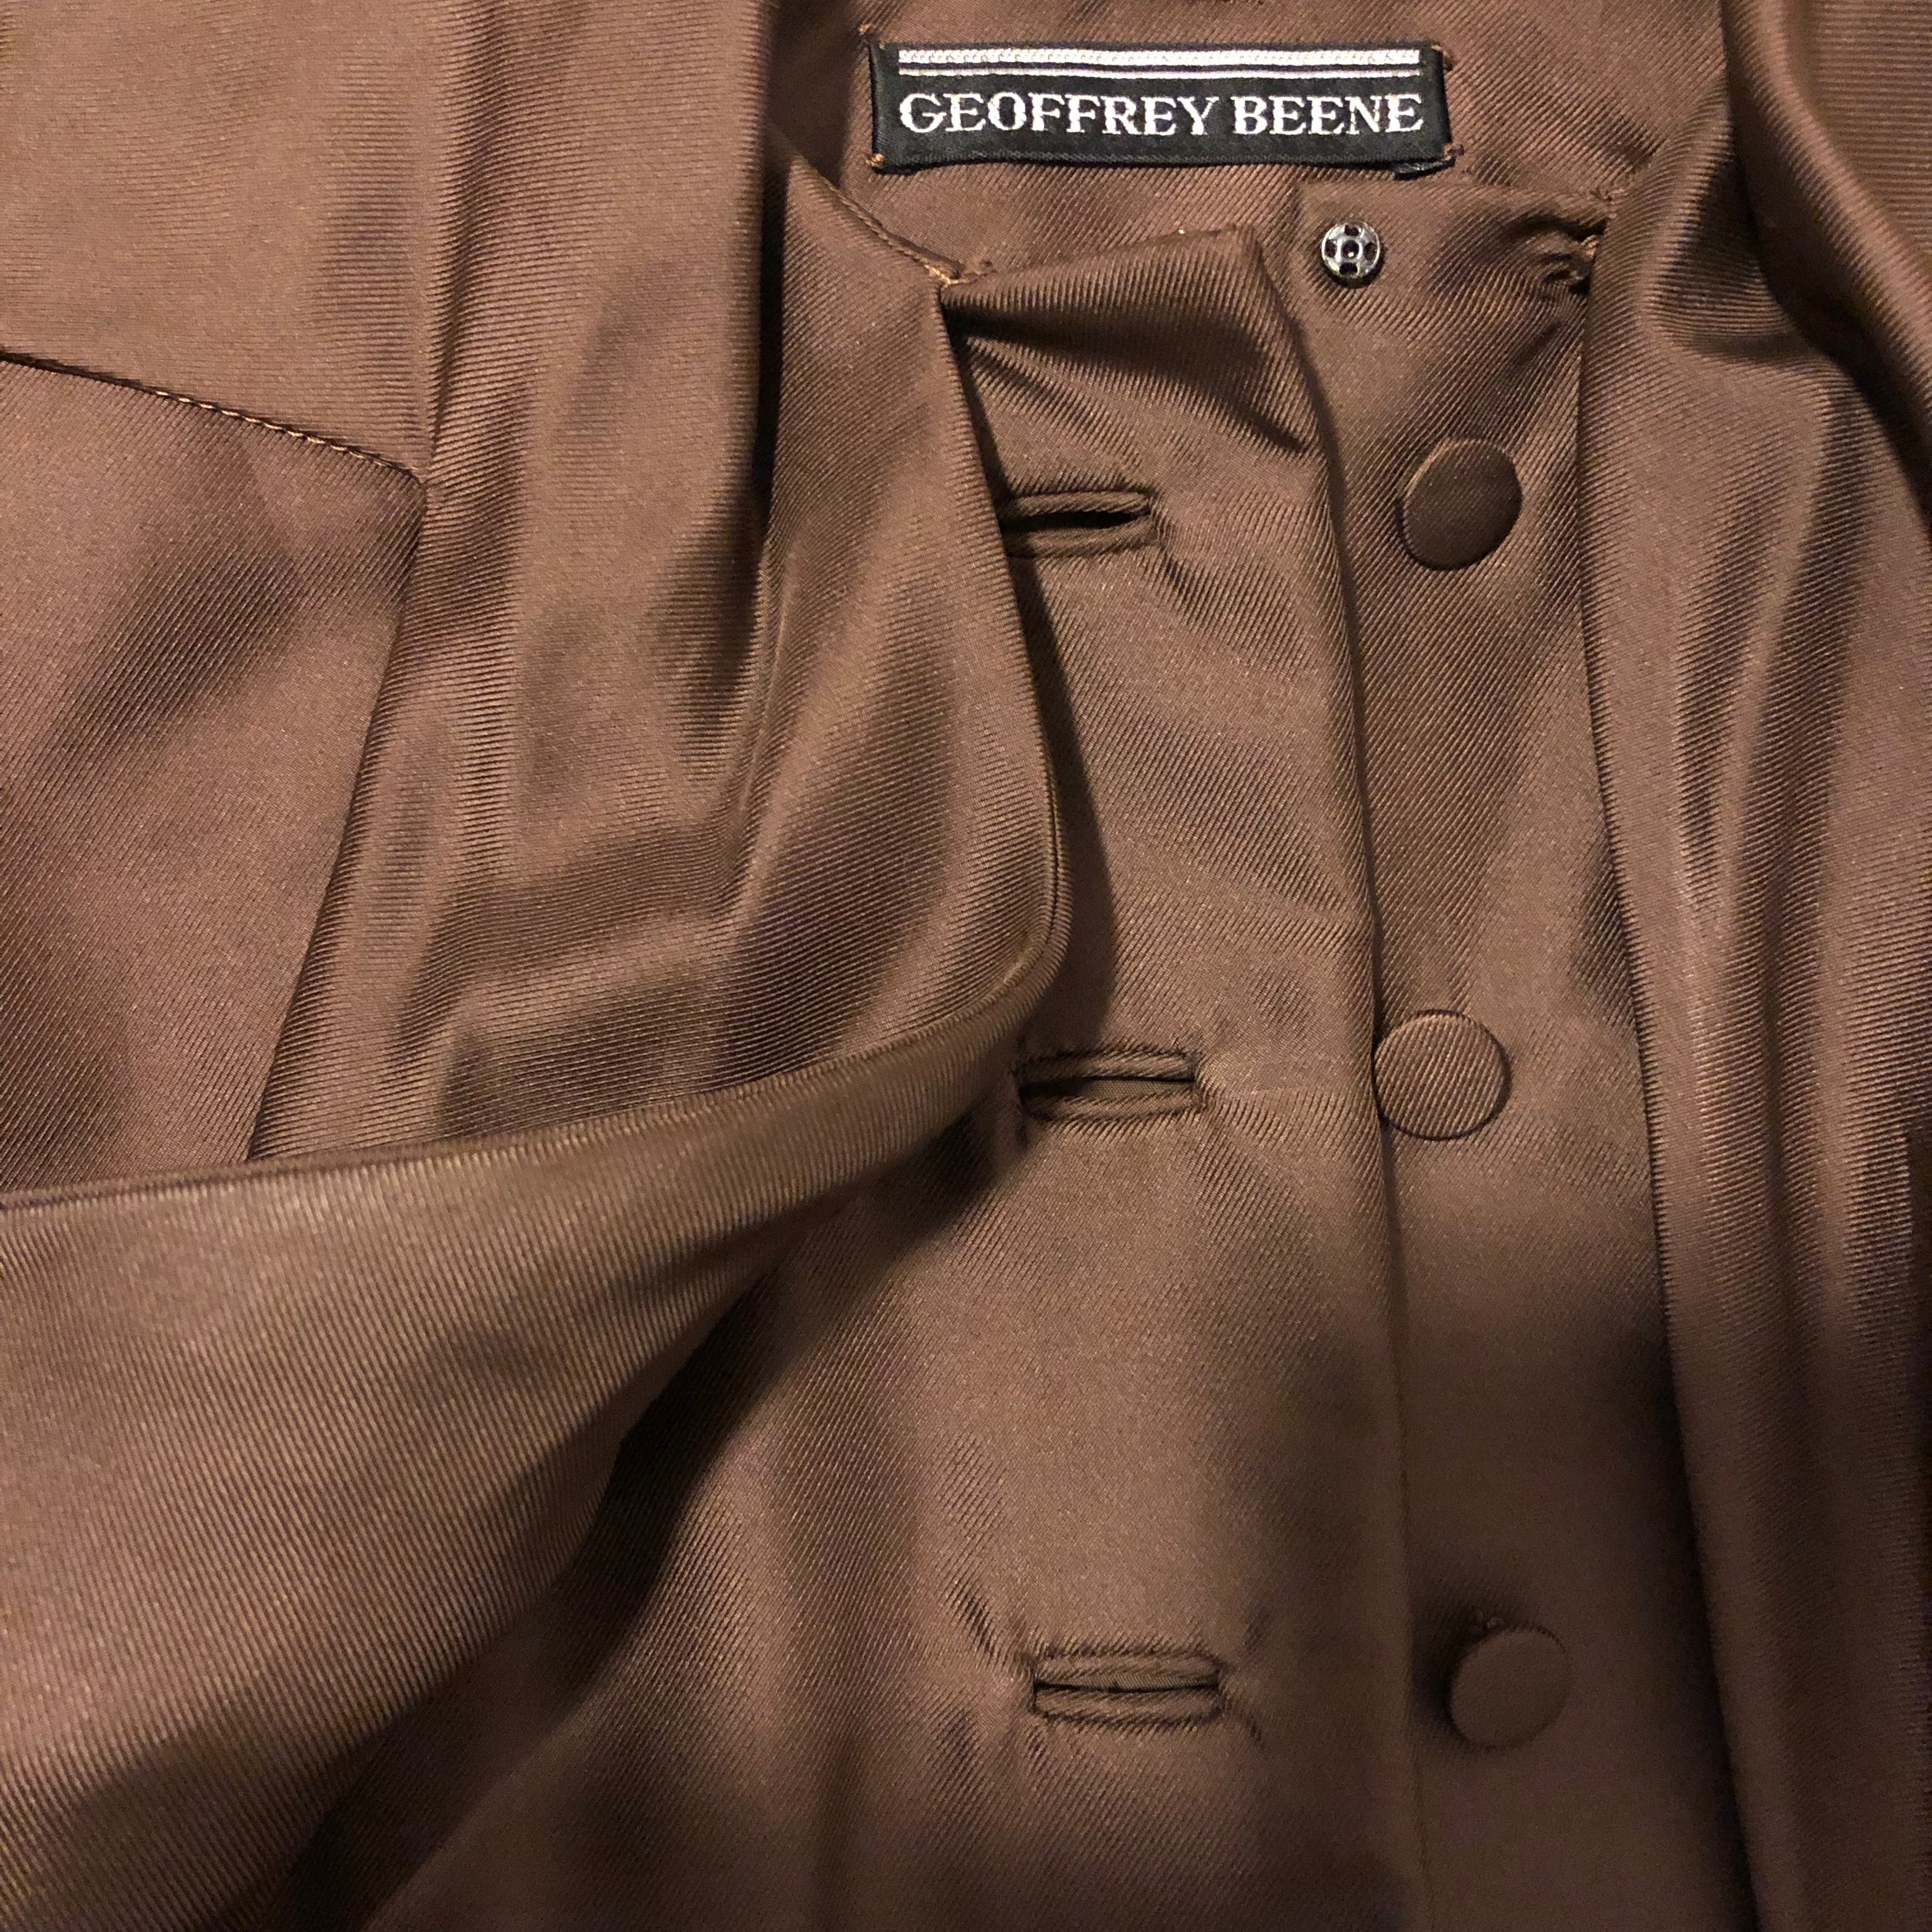 The detailing on this  Geoffrey Beene silk twill dress  is impeccable. You don't find self covered buttons and welt buttonholes in typical garments anymore.